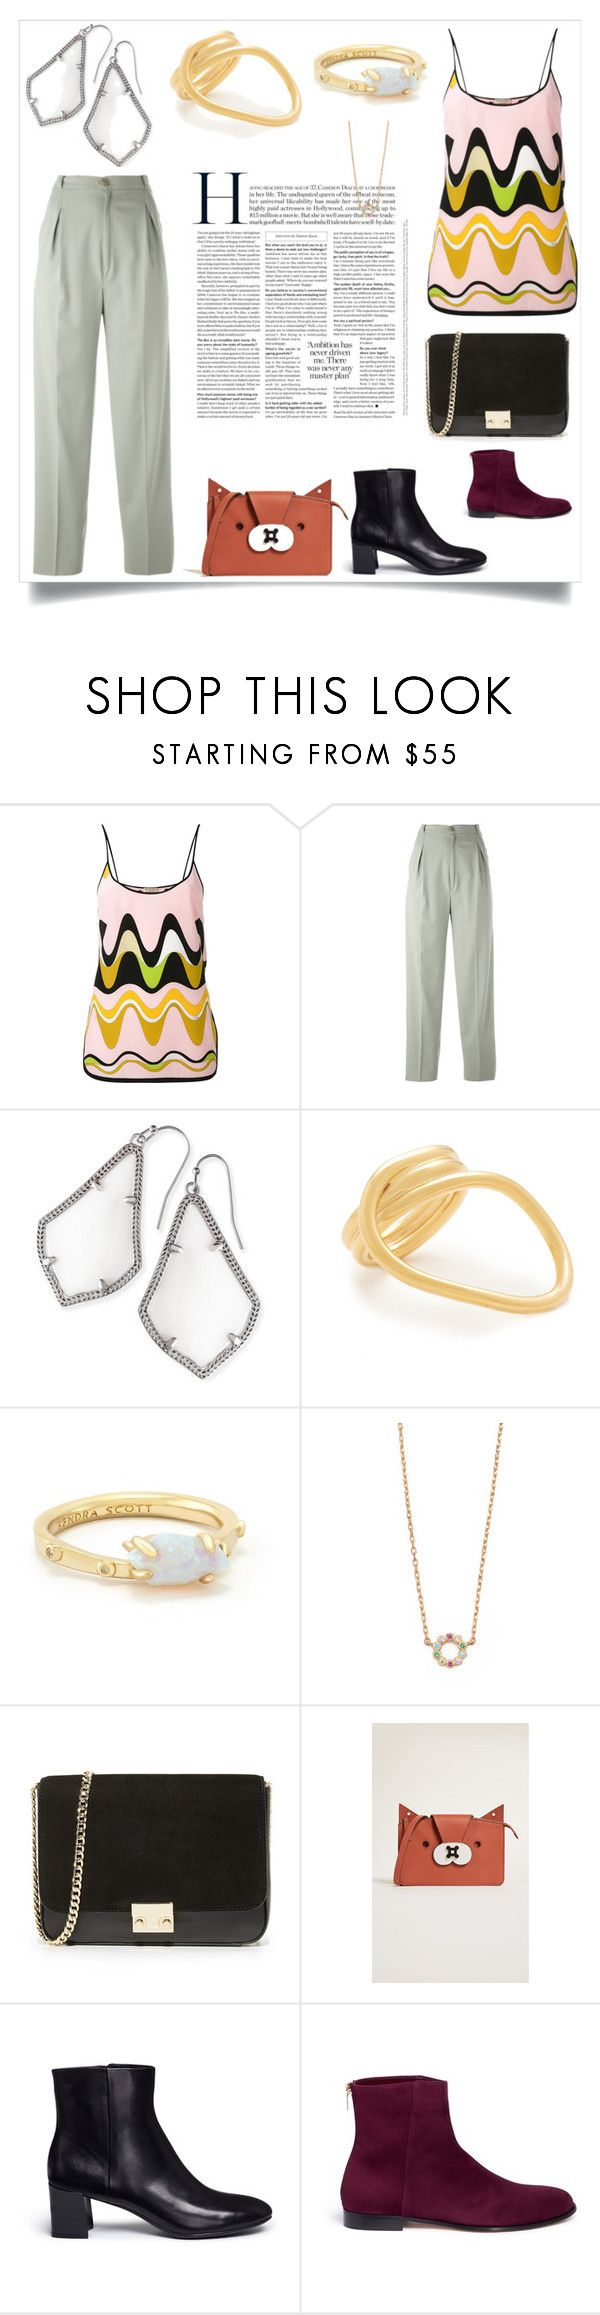 """Passion for Fashion"" by mkrish ❤ liked on Polyvore featuring Emilio Pucci, Jean-Louis Scherrer, Kendra Scott, Amber Sceats, Marc Jacobs, Loeffler Randall, Anya Hindmarch, Pedder Red and Jimmy Choo"